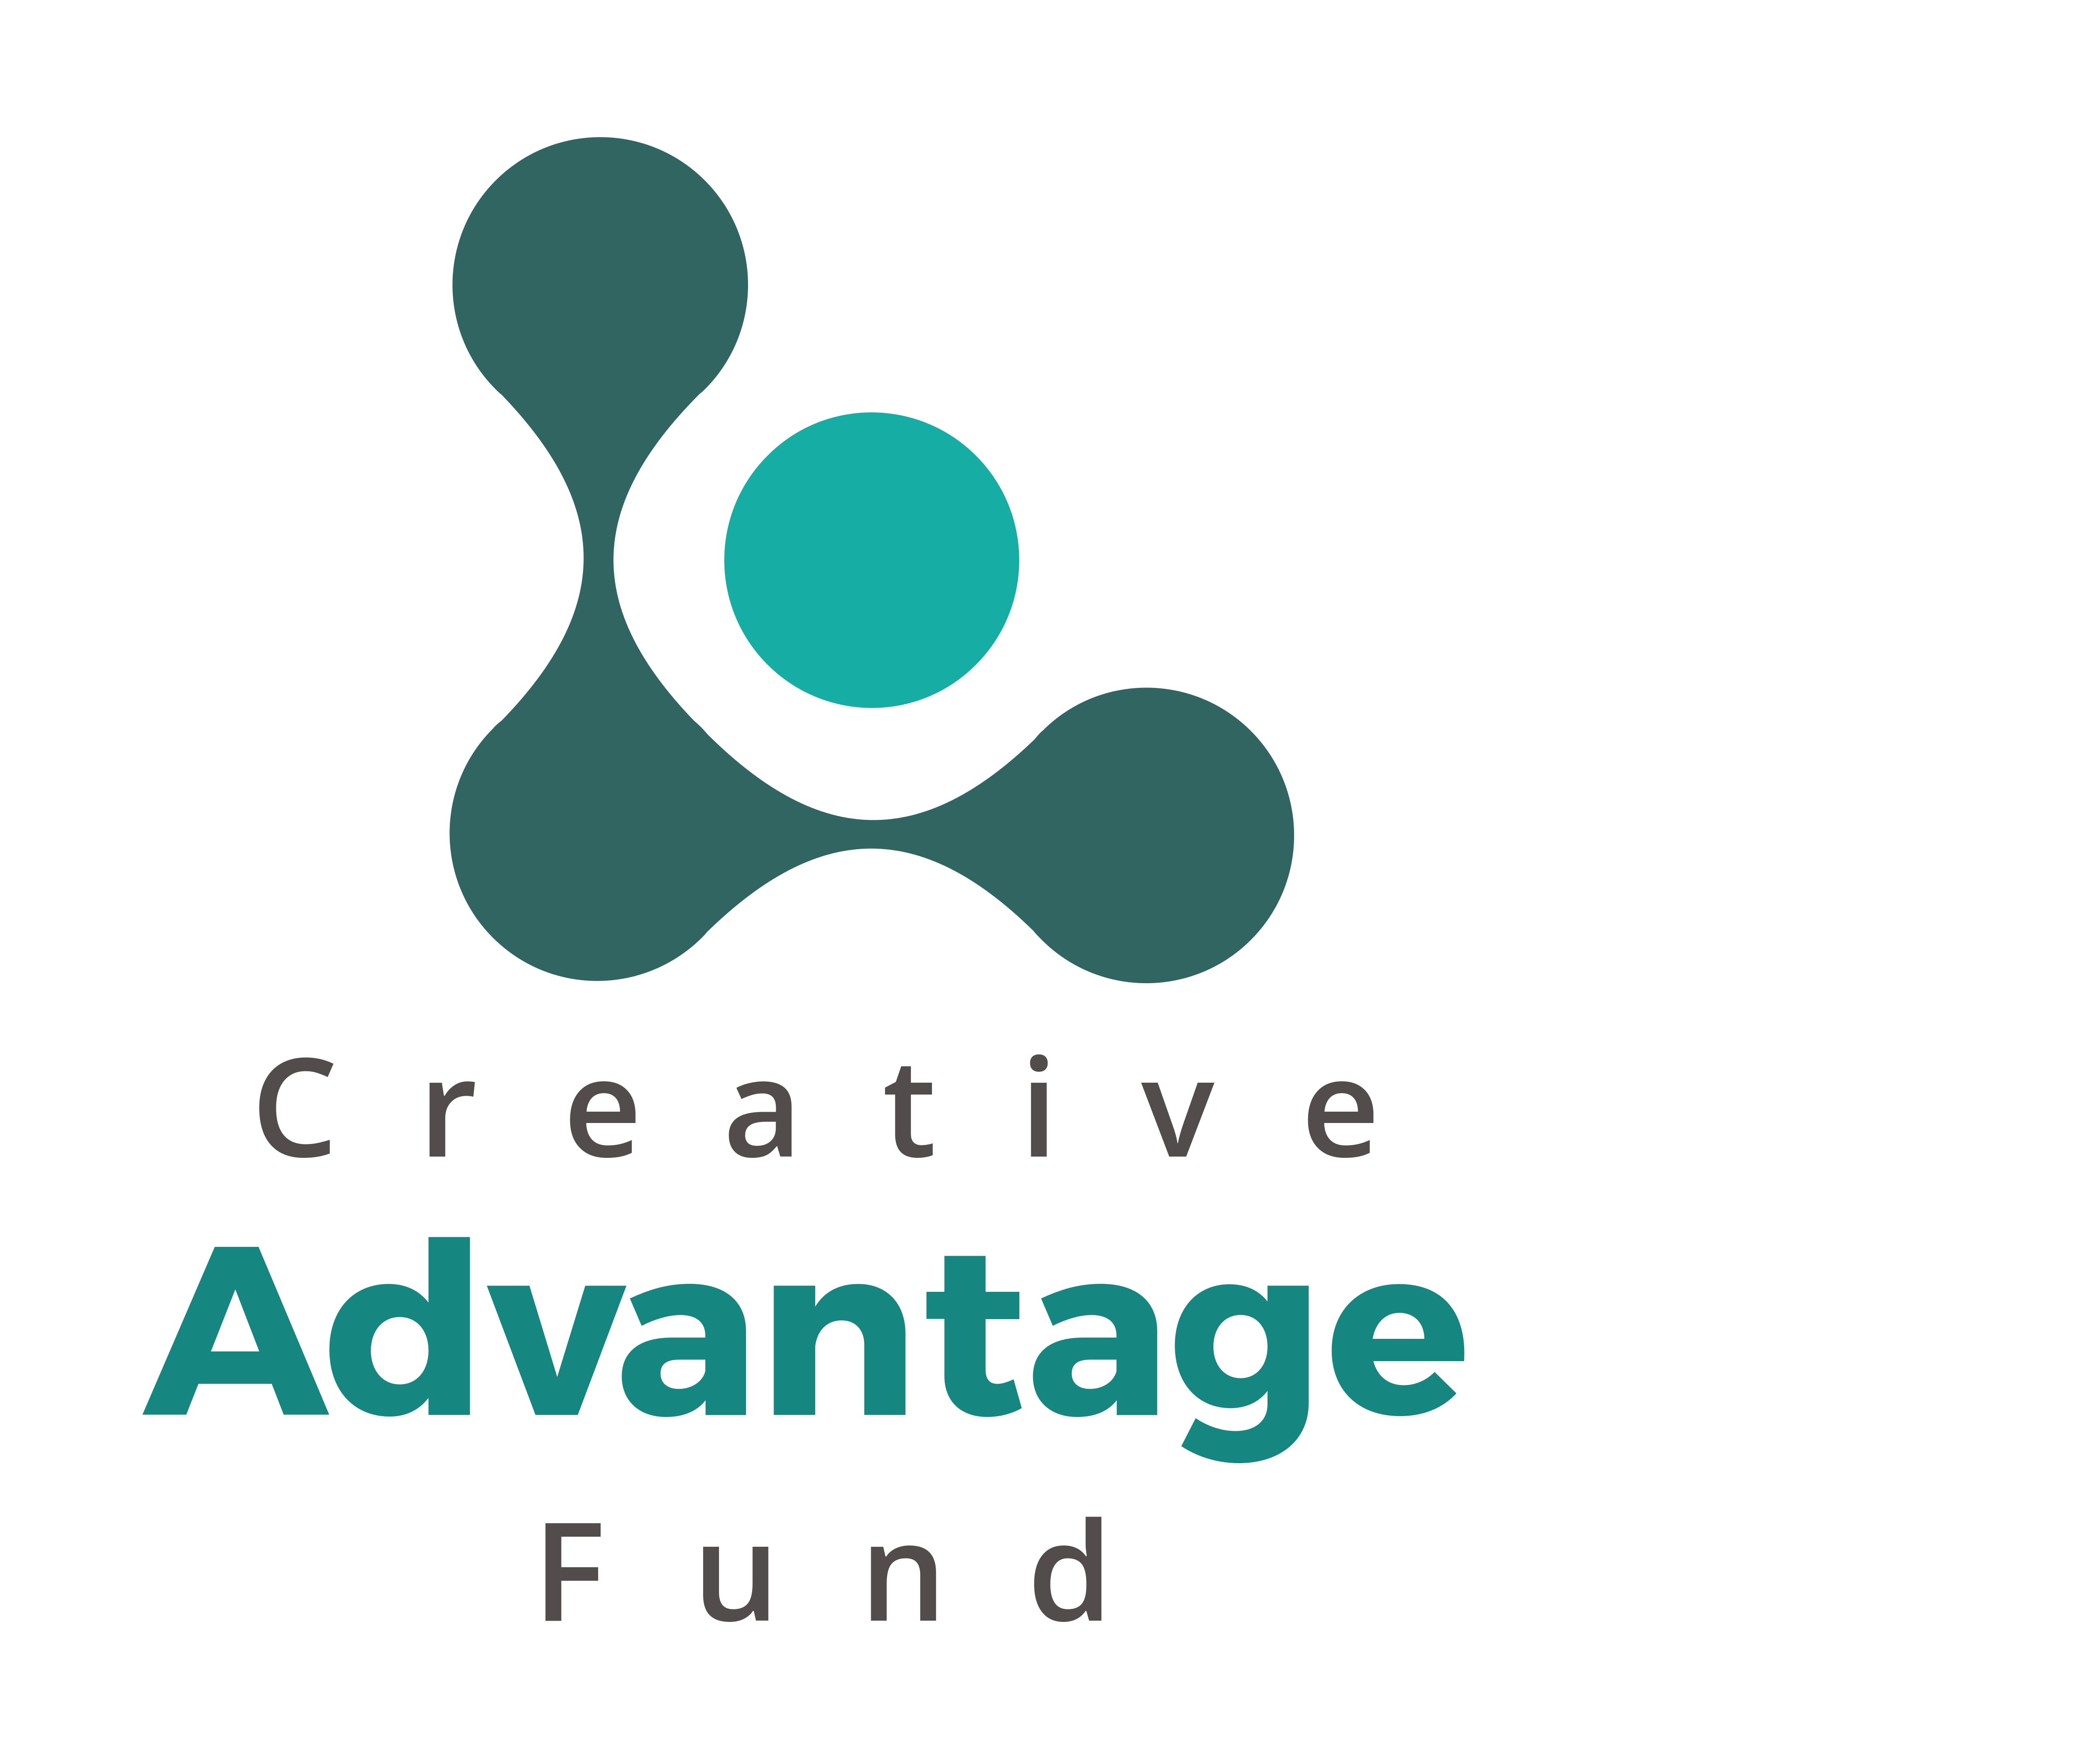 Creative advantage fund logo